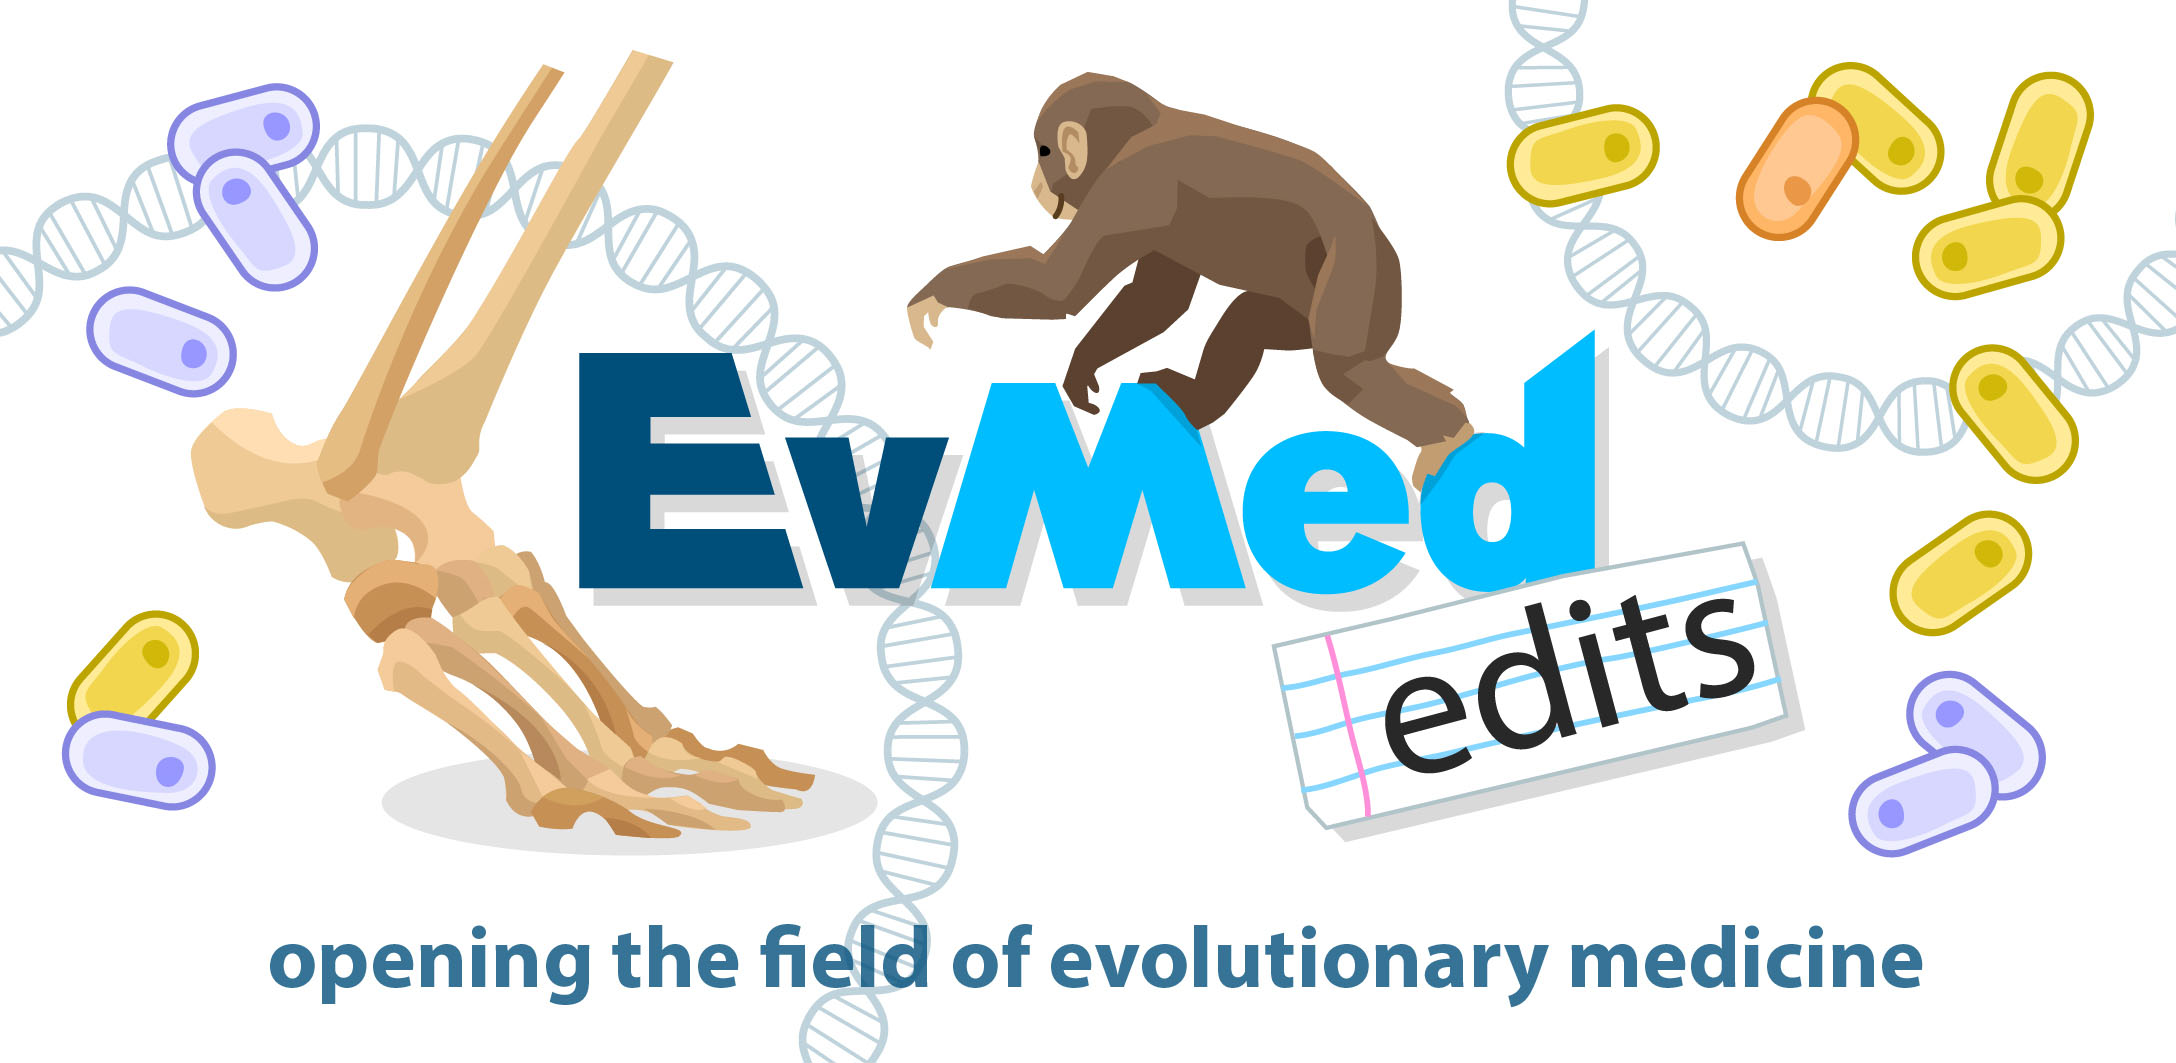 Why Do We Get Sick? Evolutionary Medicine Benefits & Research